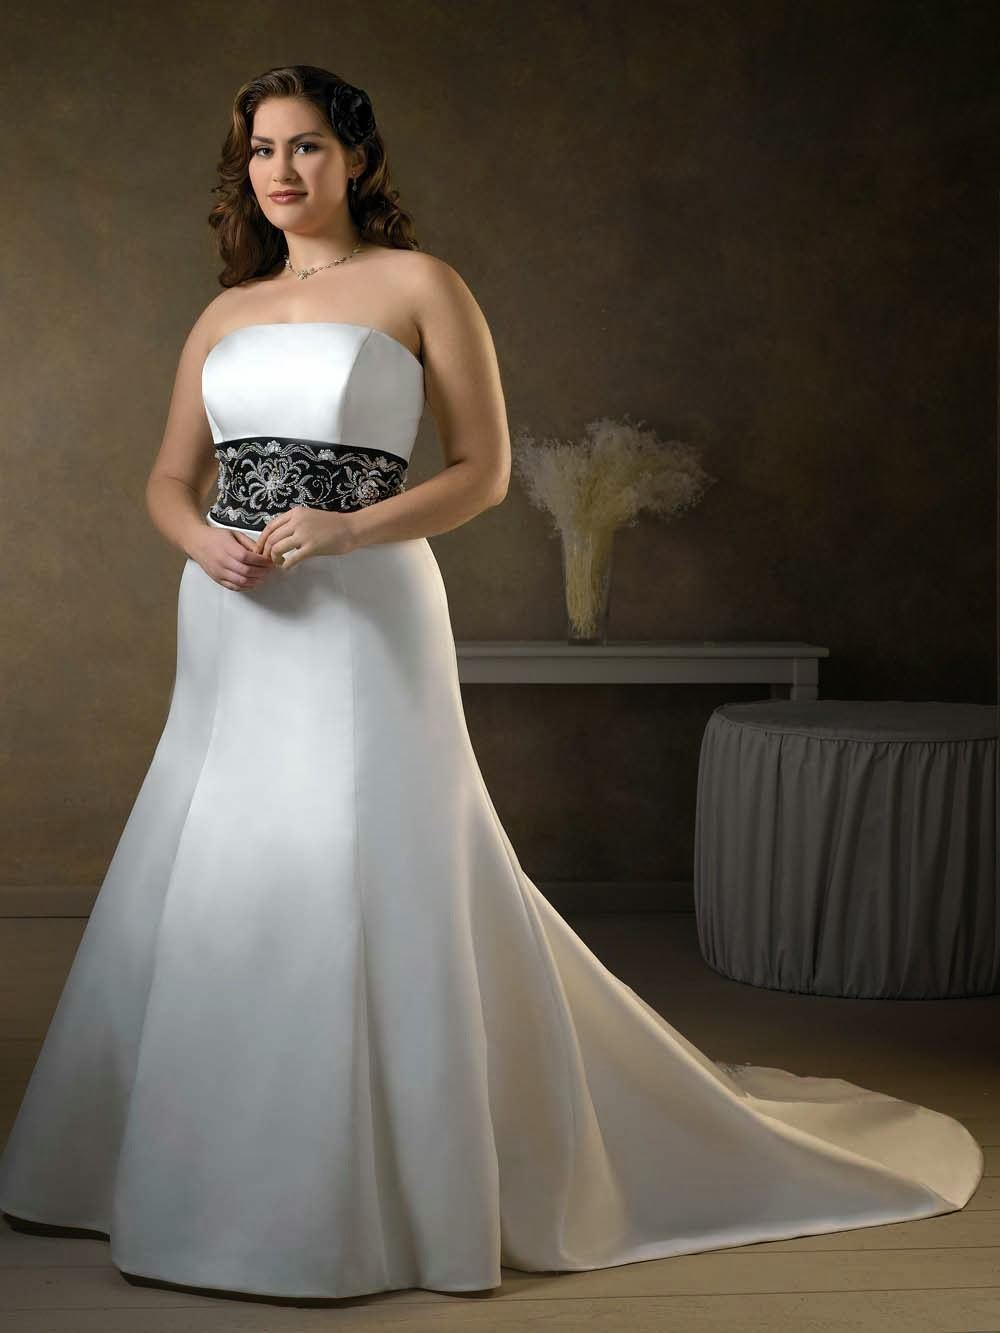 Used wedding gown get high quality plus size dress with for Wedding dresses for larger sizes